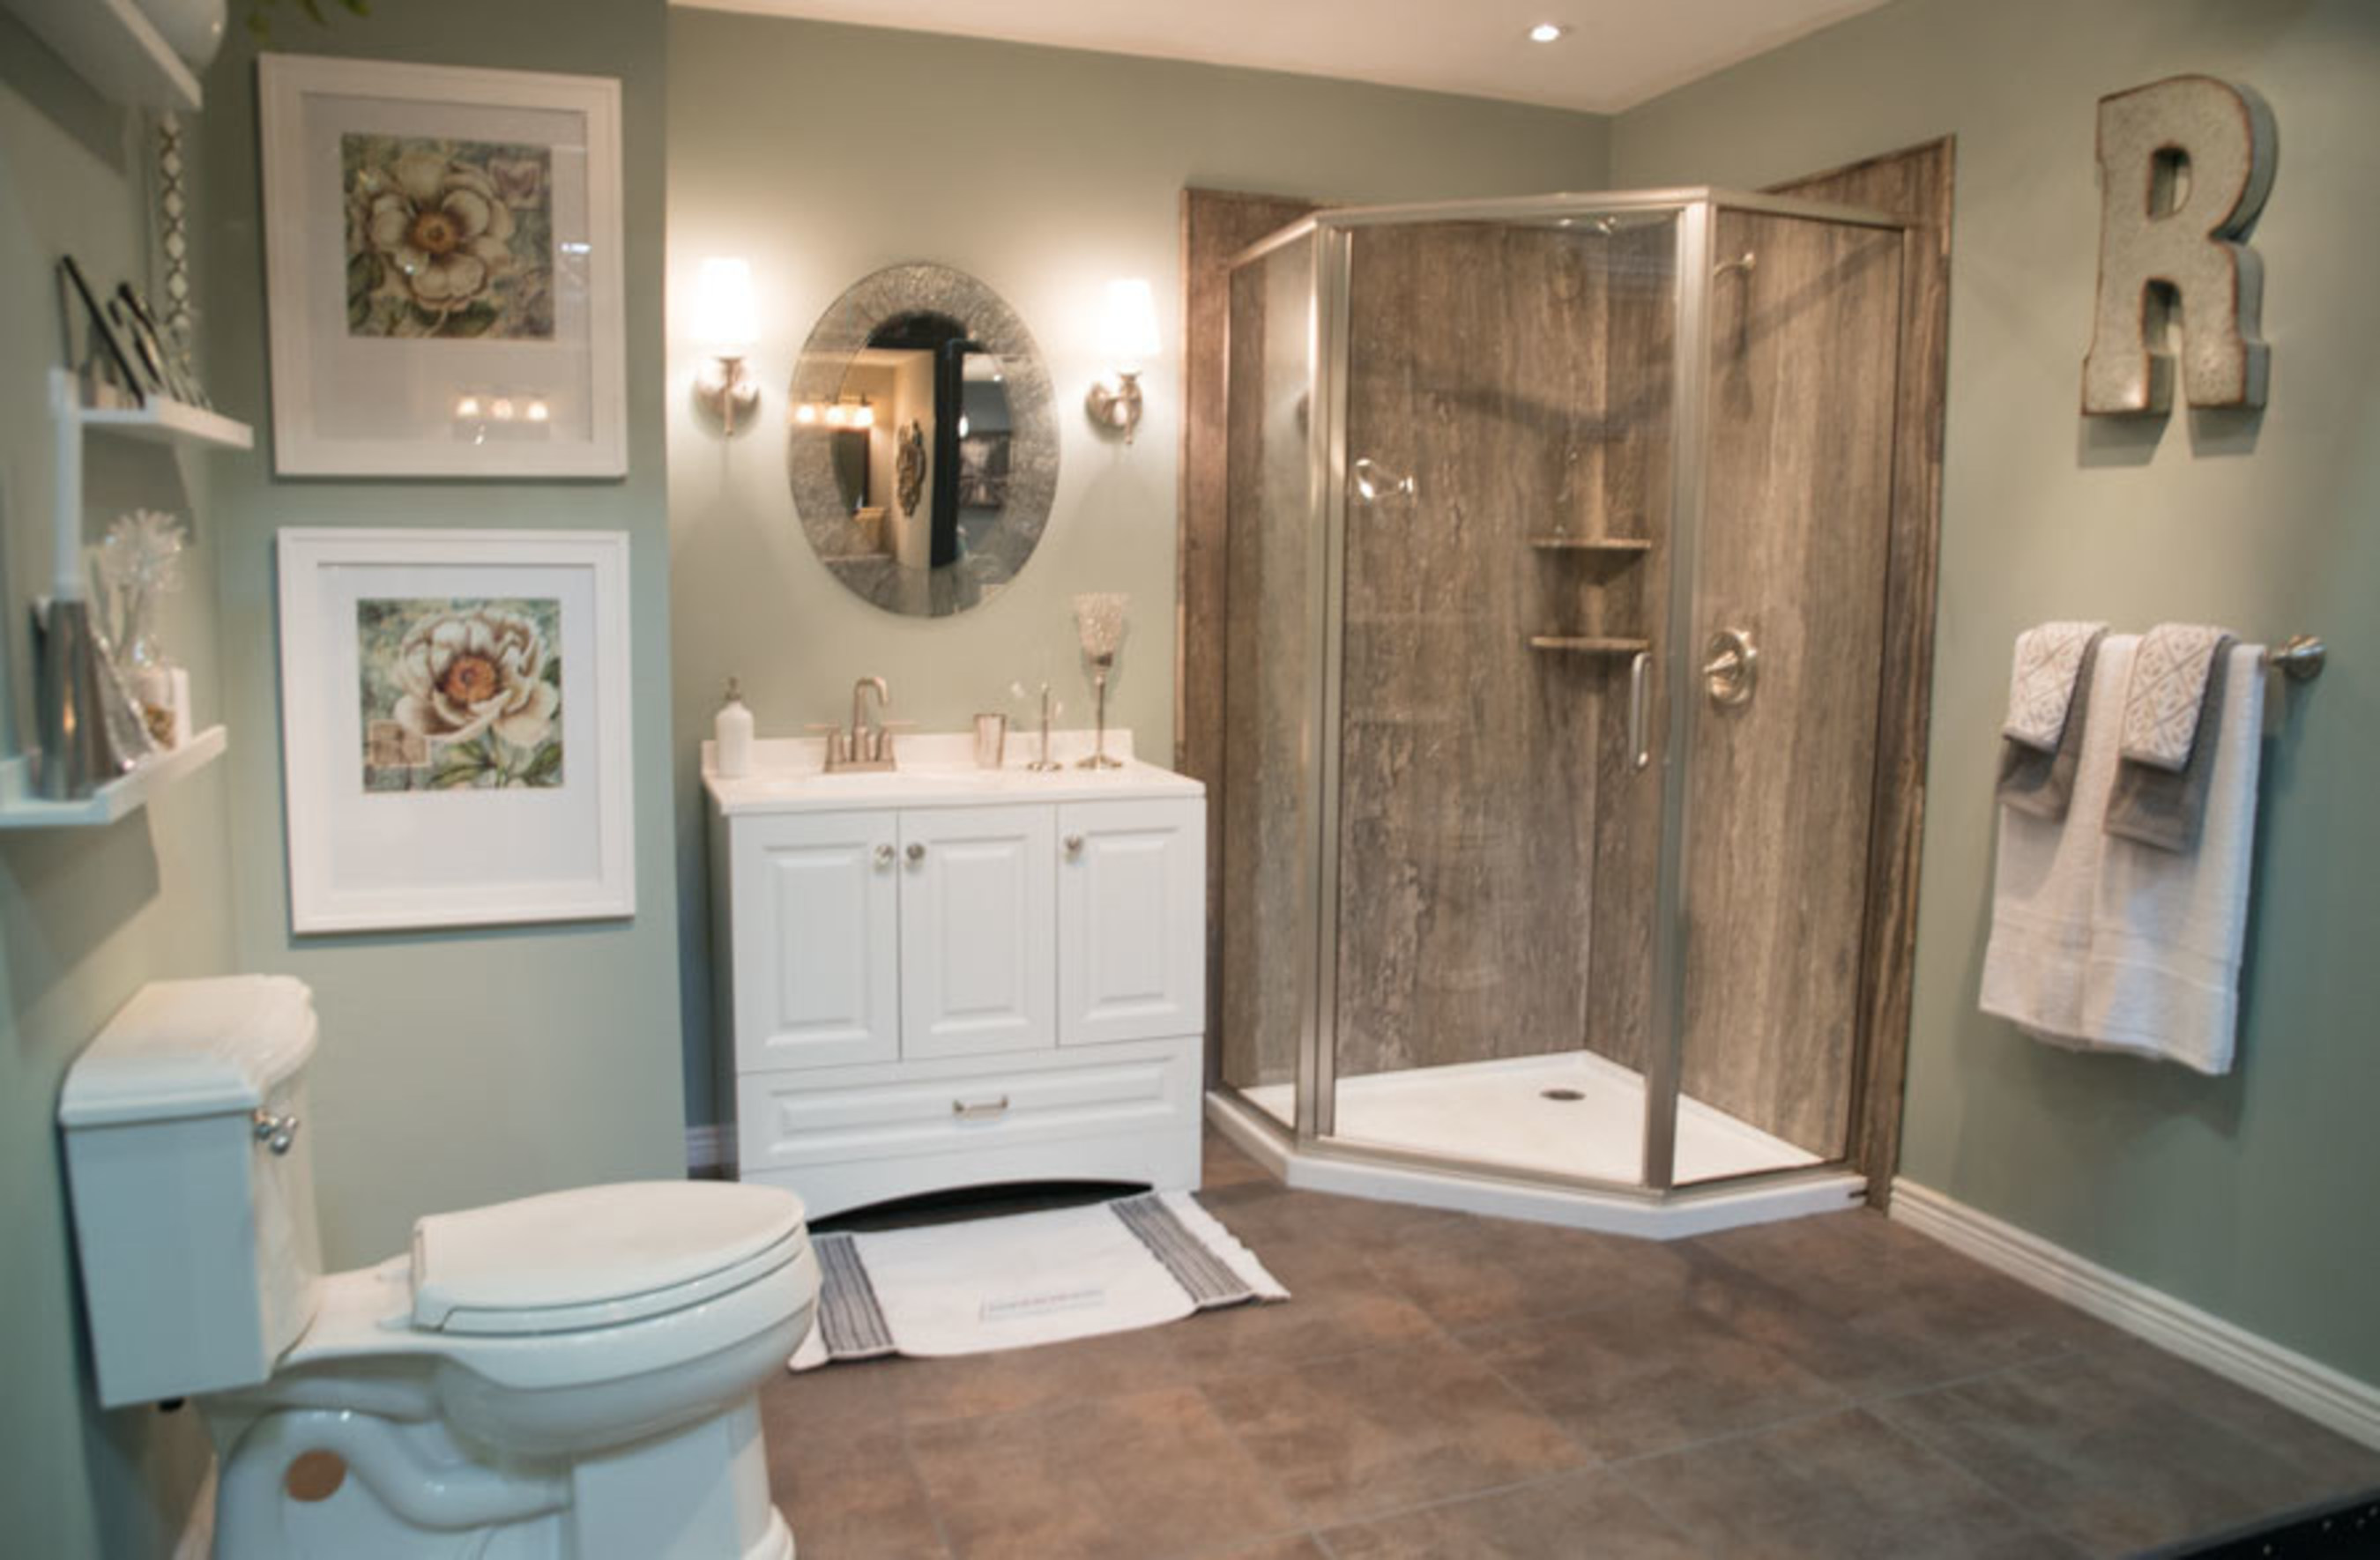 Re Bath Bathroom Remodeling Franchise Plans Expansion Into The